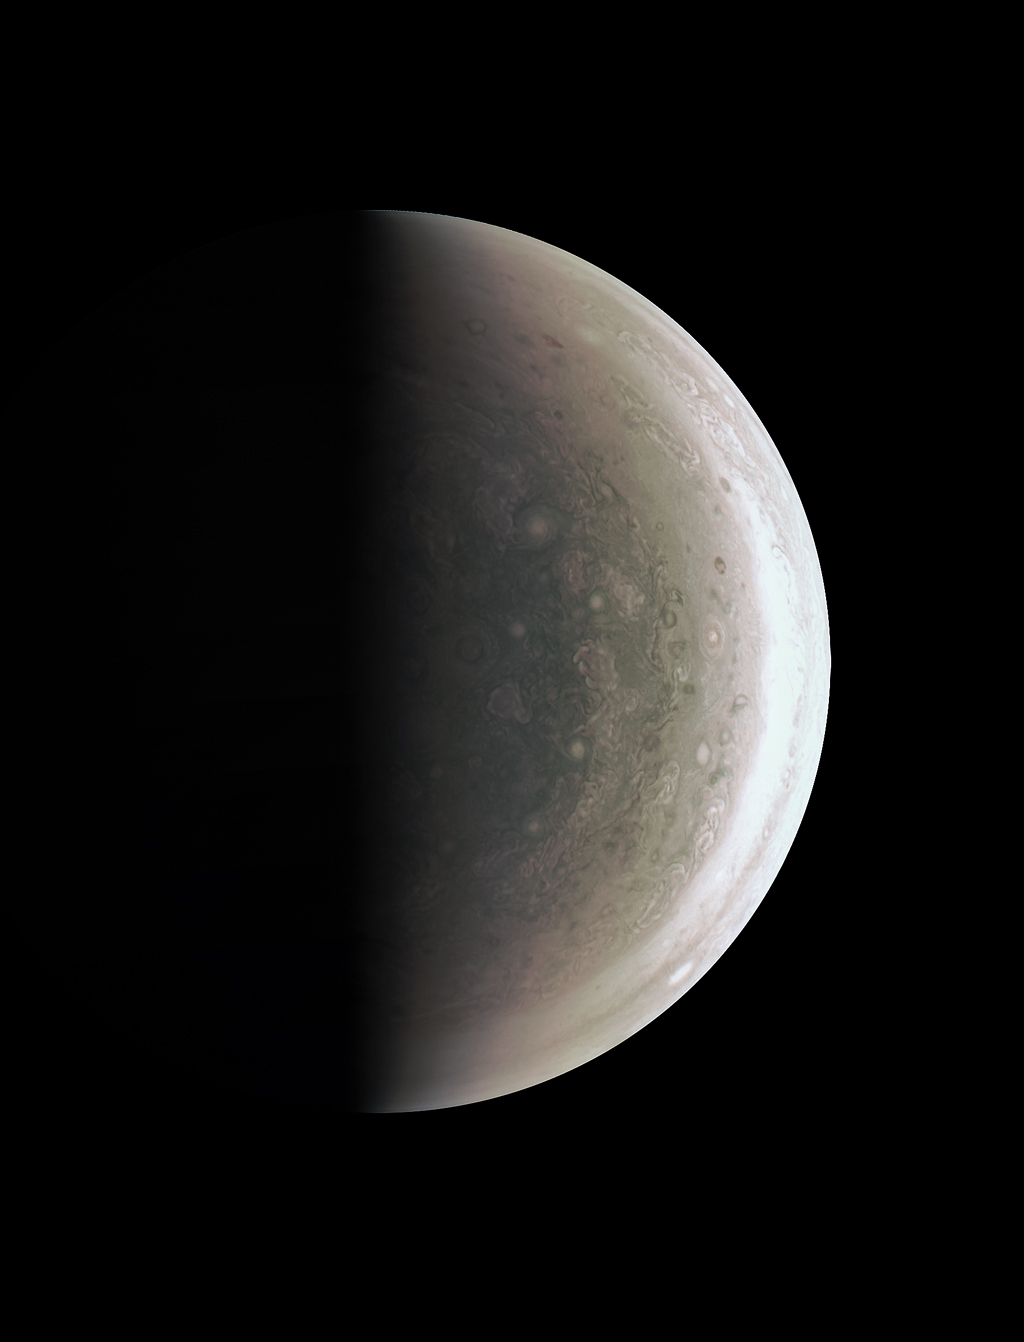 This image from NASA's Juno spacecraft provides a never-before-seen perspective on Jupiter's south pole. The JunoCam instrument acquired the view on August 27, 2016, when the spacecraft was about 58,700 miles (94,500 kilometers) above the polar region. At this point, the spacecraft was about an hour past its closest approach, and fine detail in the south polar region is clearly resolved. Unlike the equatorial region's familiar structure of belts and zones, the poles are mottled by clockwise and counterclockwise rotating storms of various sizes, similar to giant versions of terrestrial hurricanes. Credit: NASA/JPL-Caltech/SwRI/MSSS